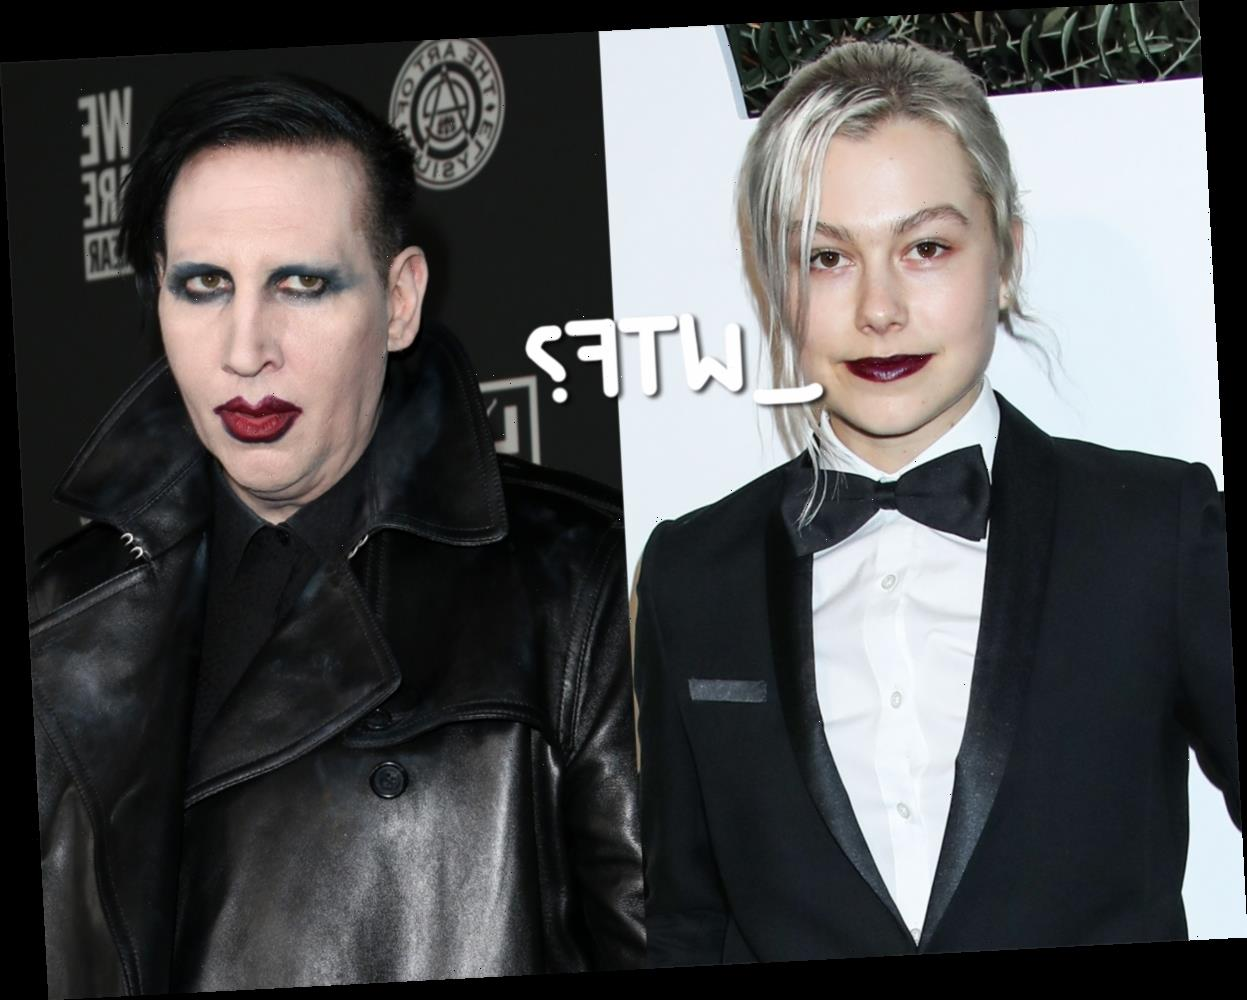 Phoebe Bridgers Says Marilyn Manson Once Bragged To Her About Having A 'Rape Room'